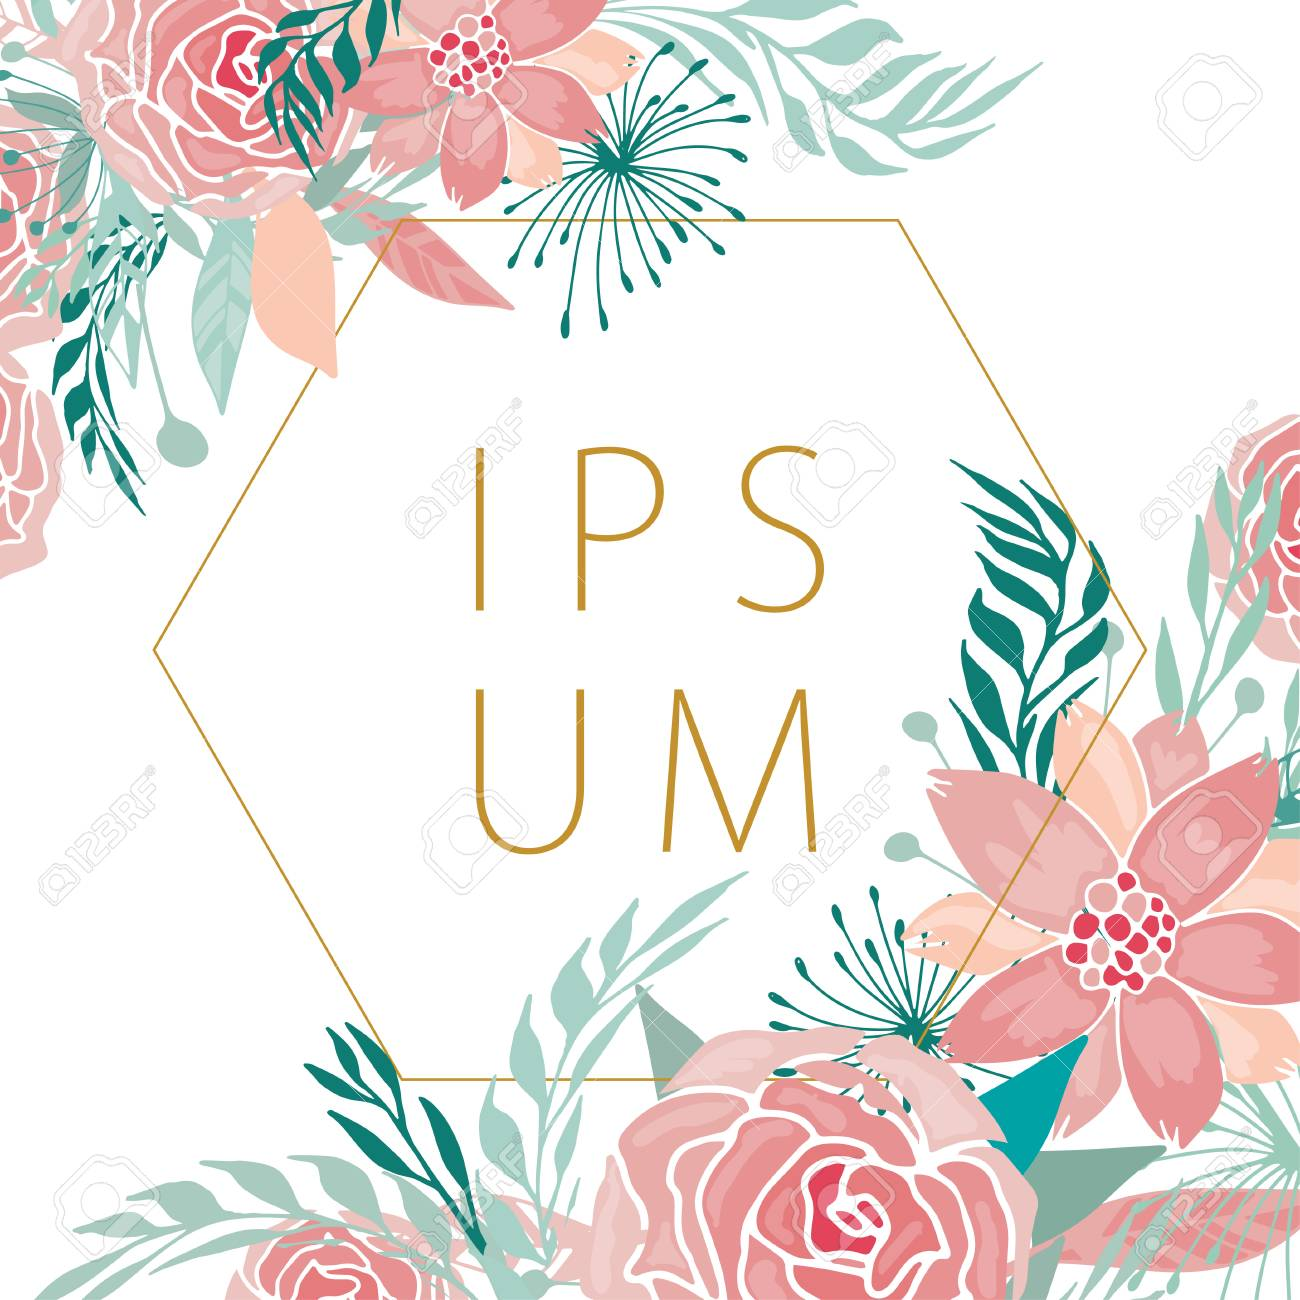 Modern Floral Background With Fantasy Roses And Peonies With